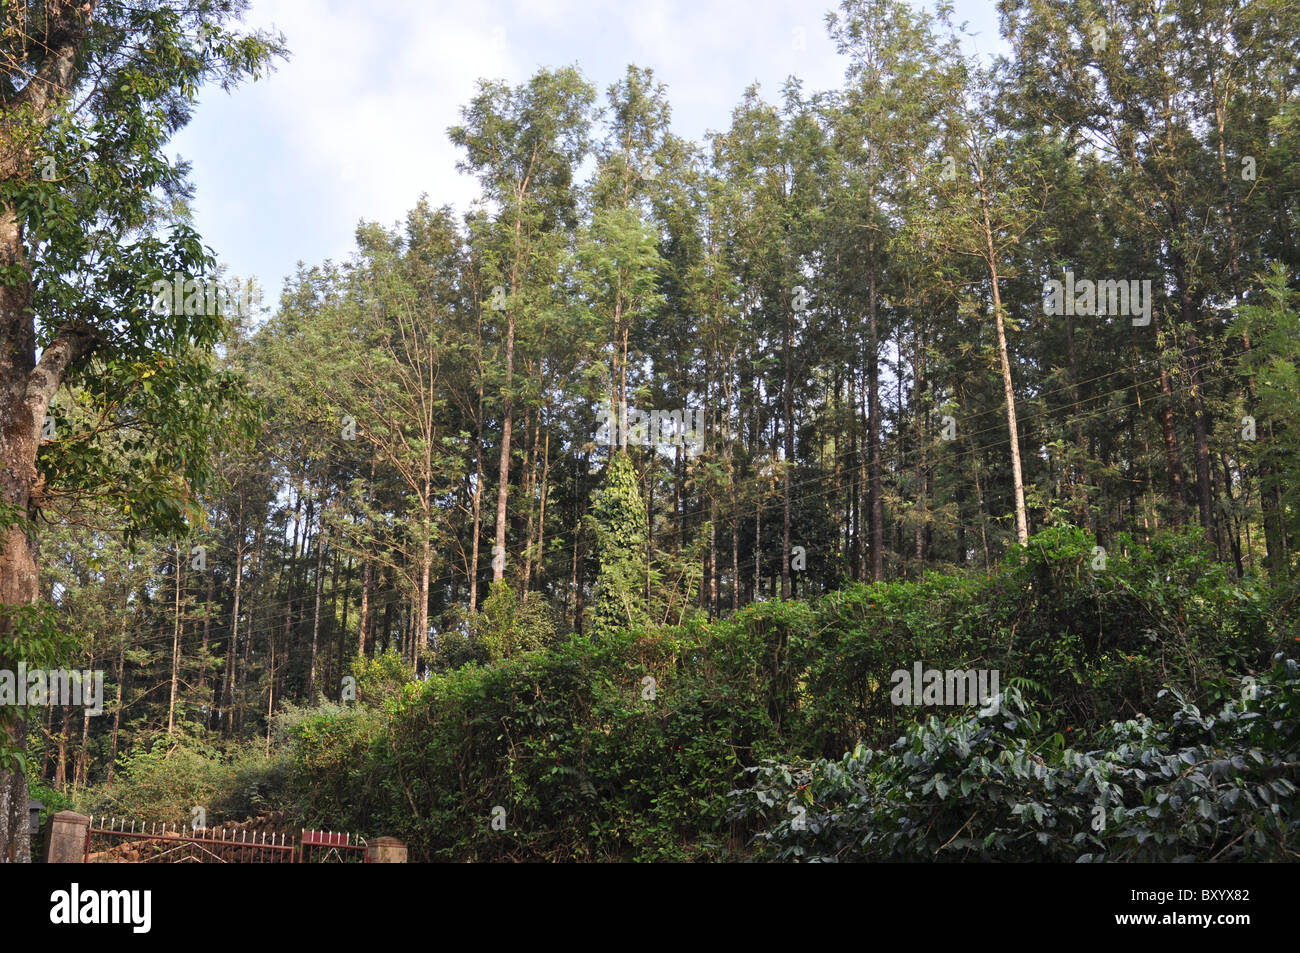 Shade trees planted close to each other in a coffee estate - Stock Image